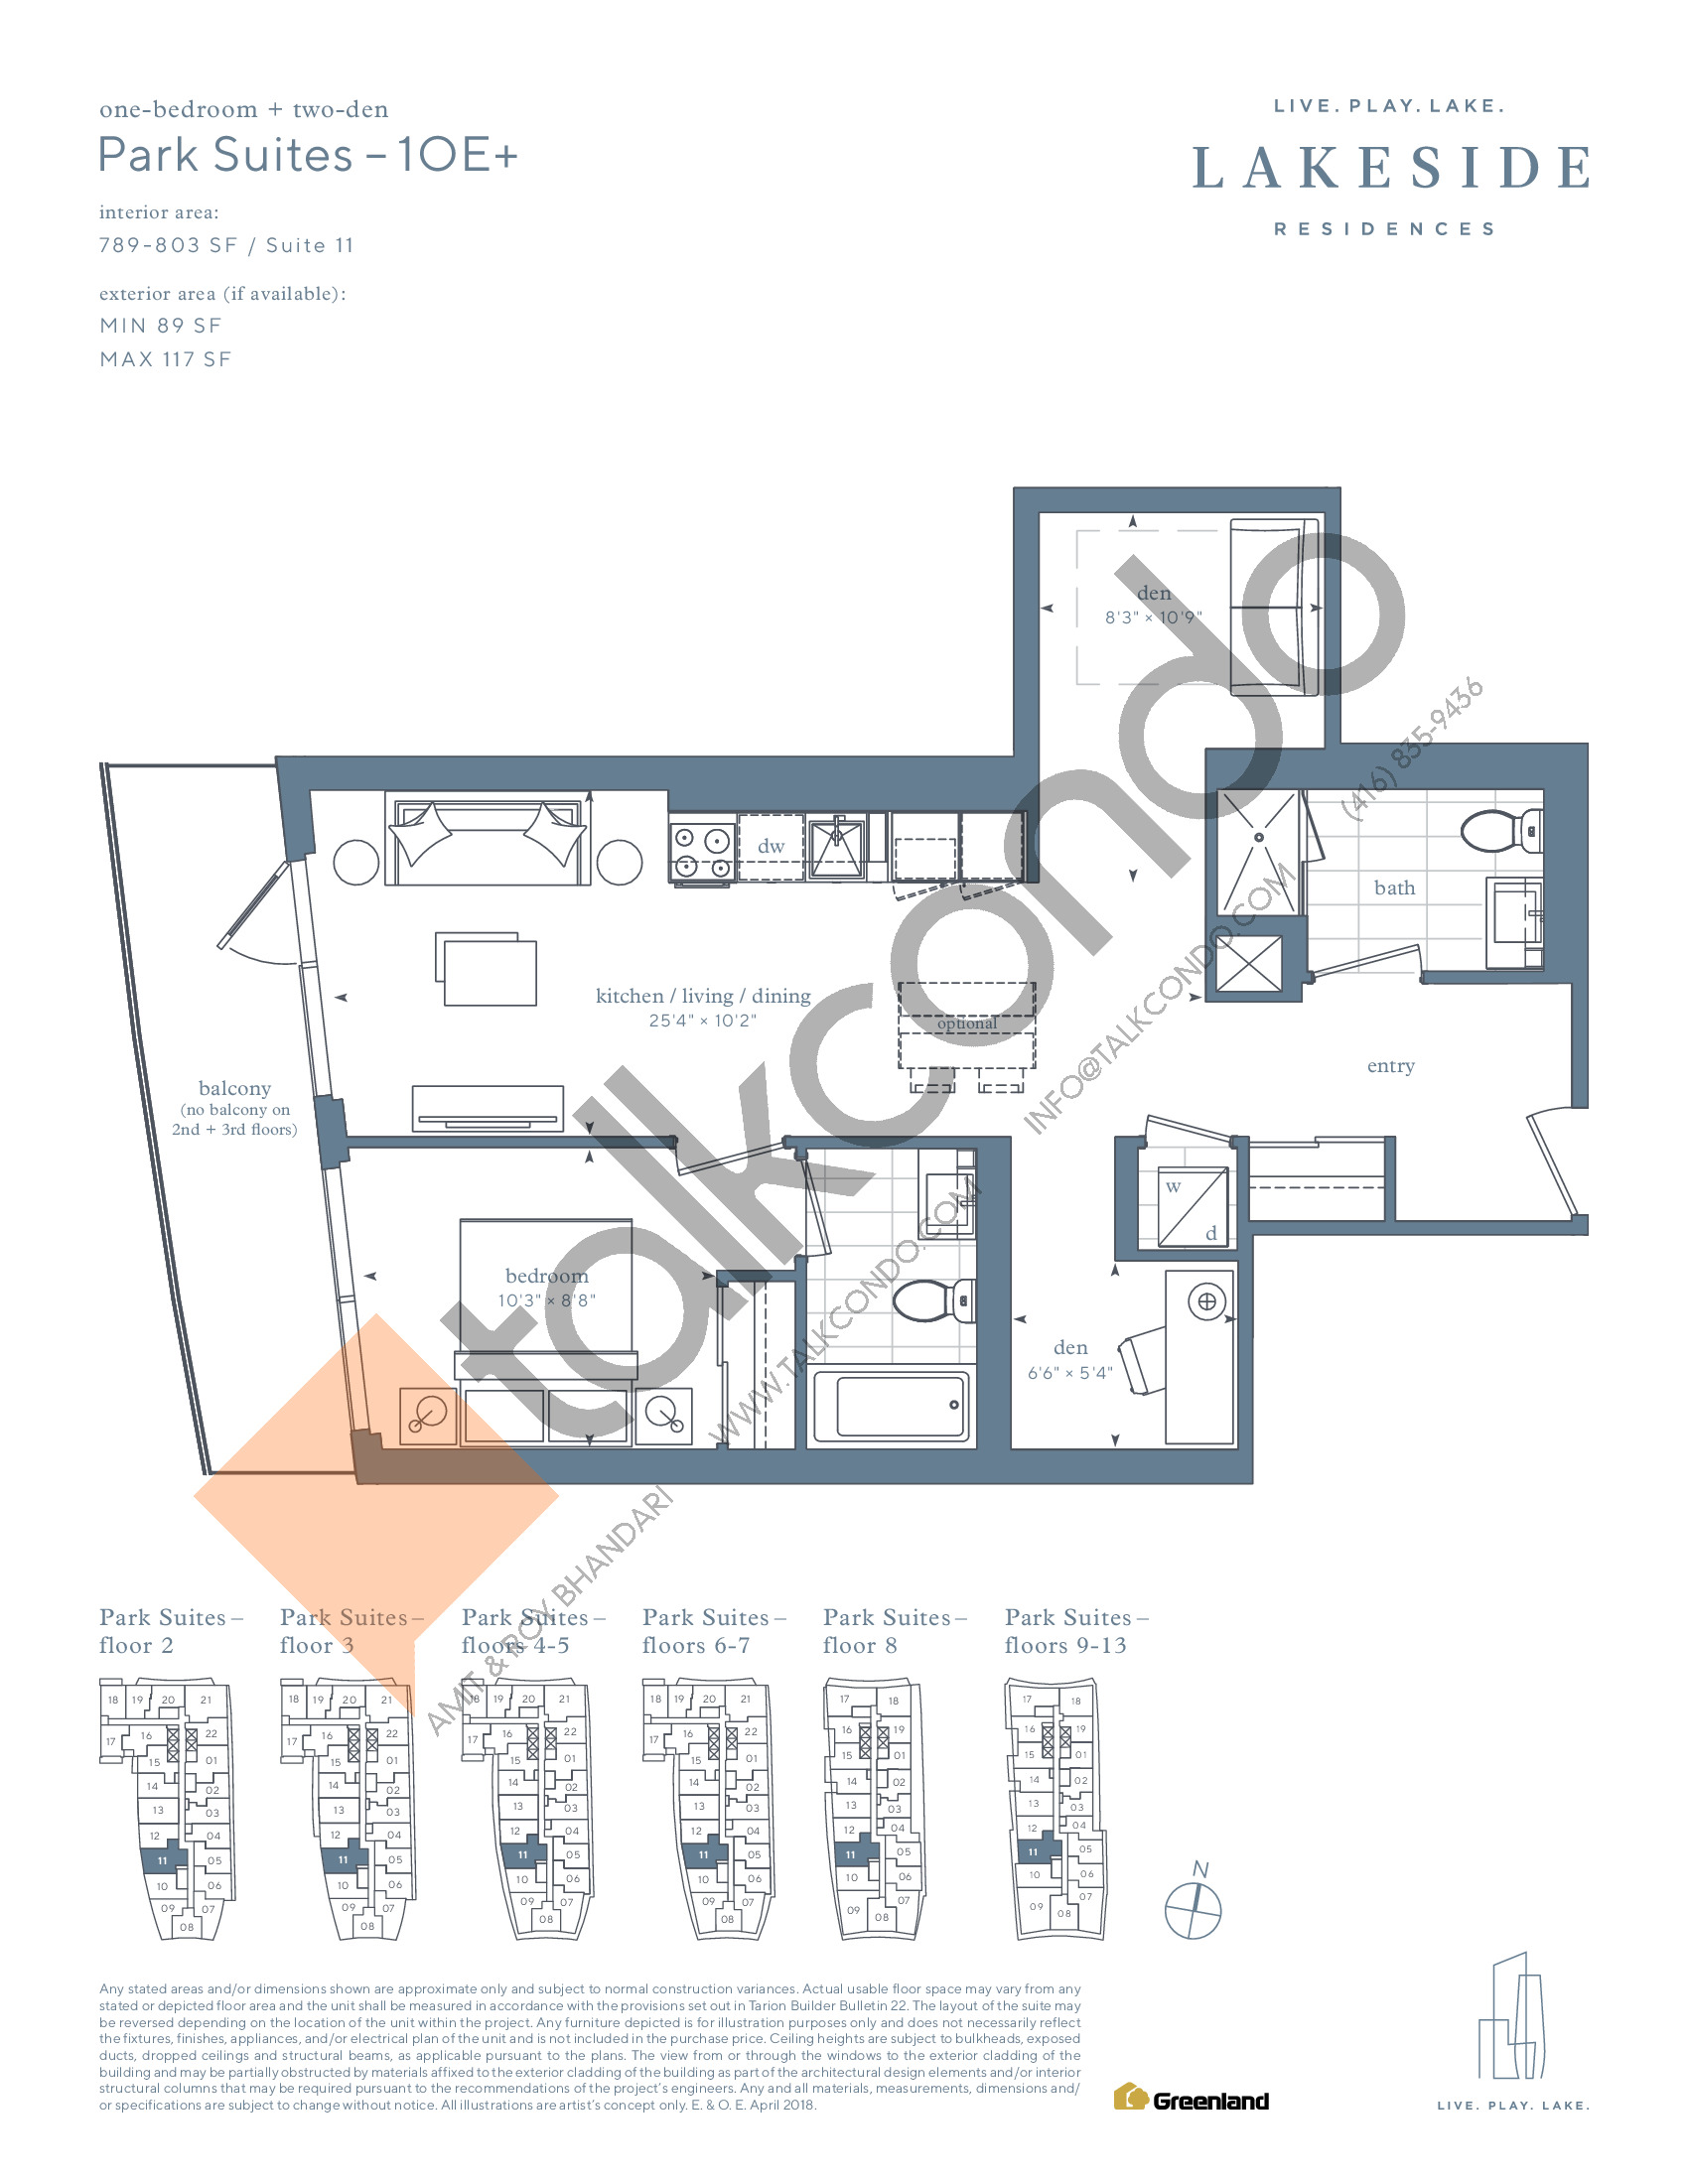 Park Suites - 1OE+ Floor Plan at Lakeside Residences - 803 sq.ft